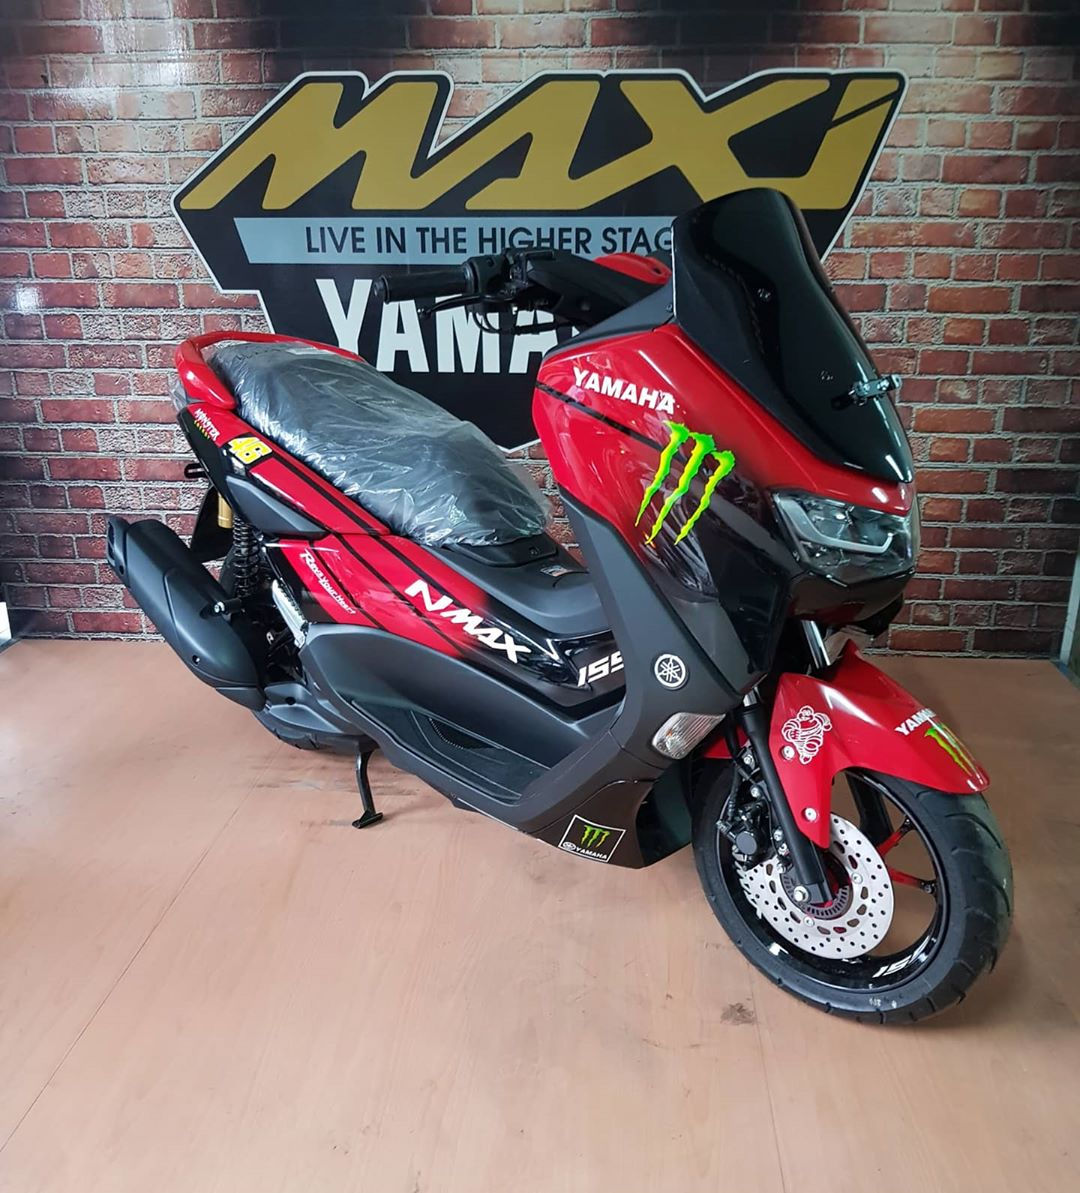 Yamaha New Nmax Airbrush Design Grafis